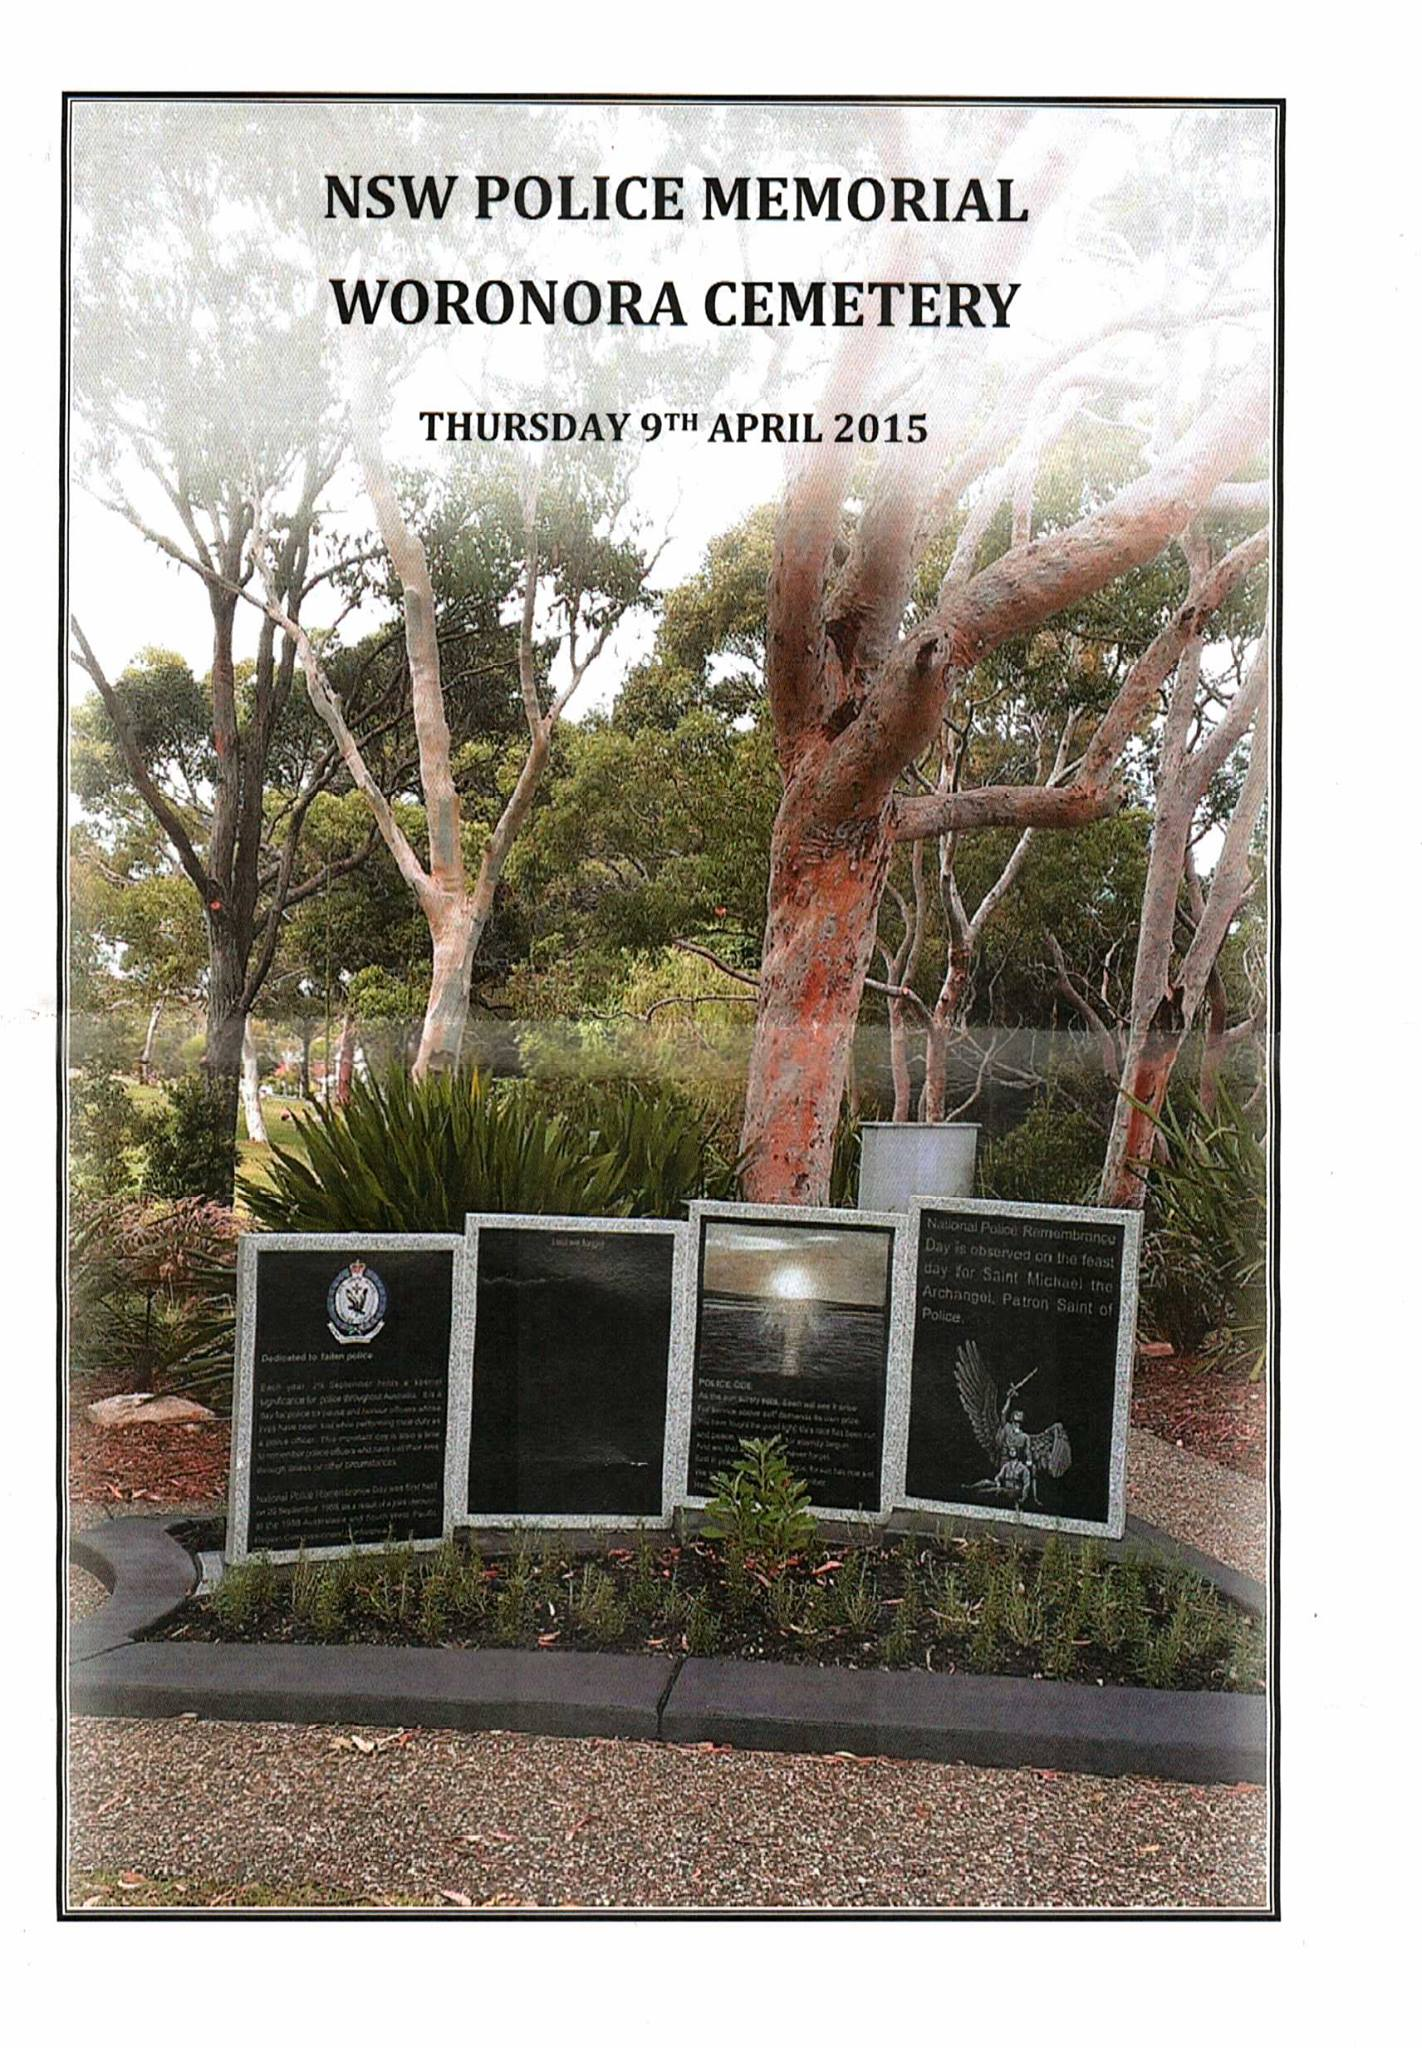 Woronora Cemetery - Wall of Remembrance 9